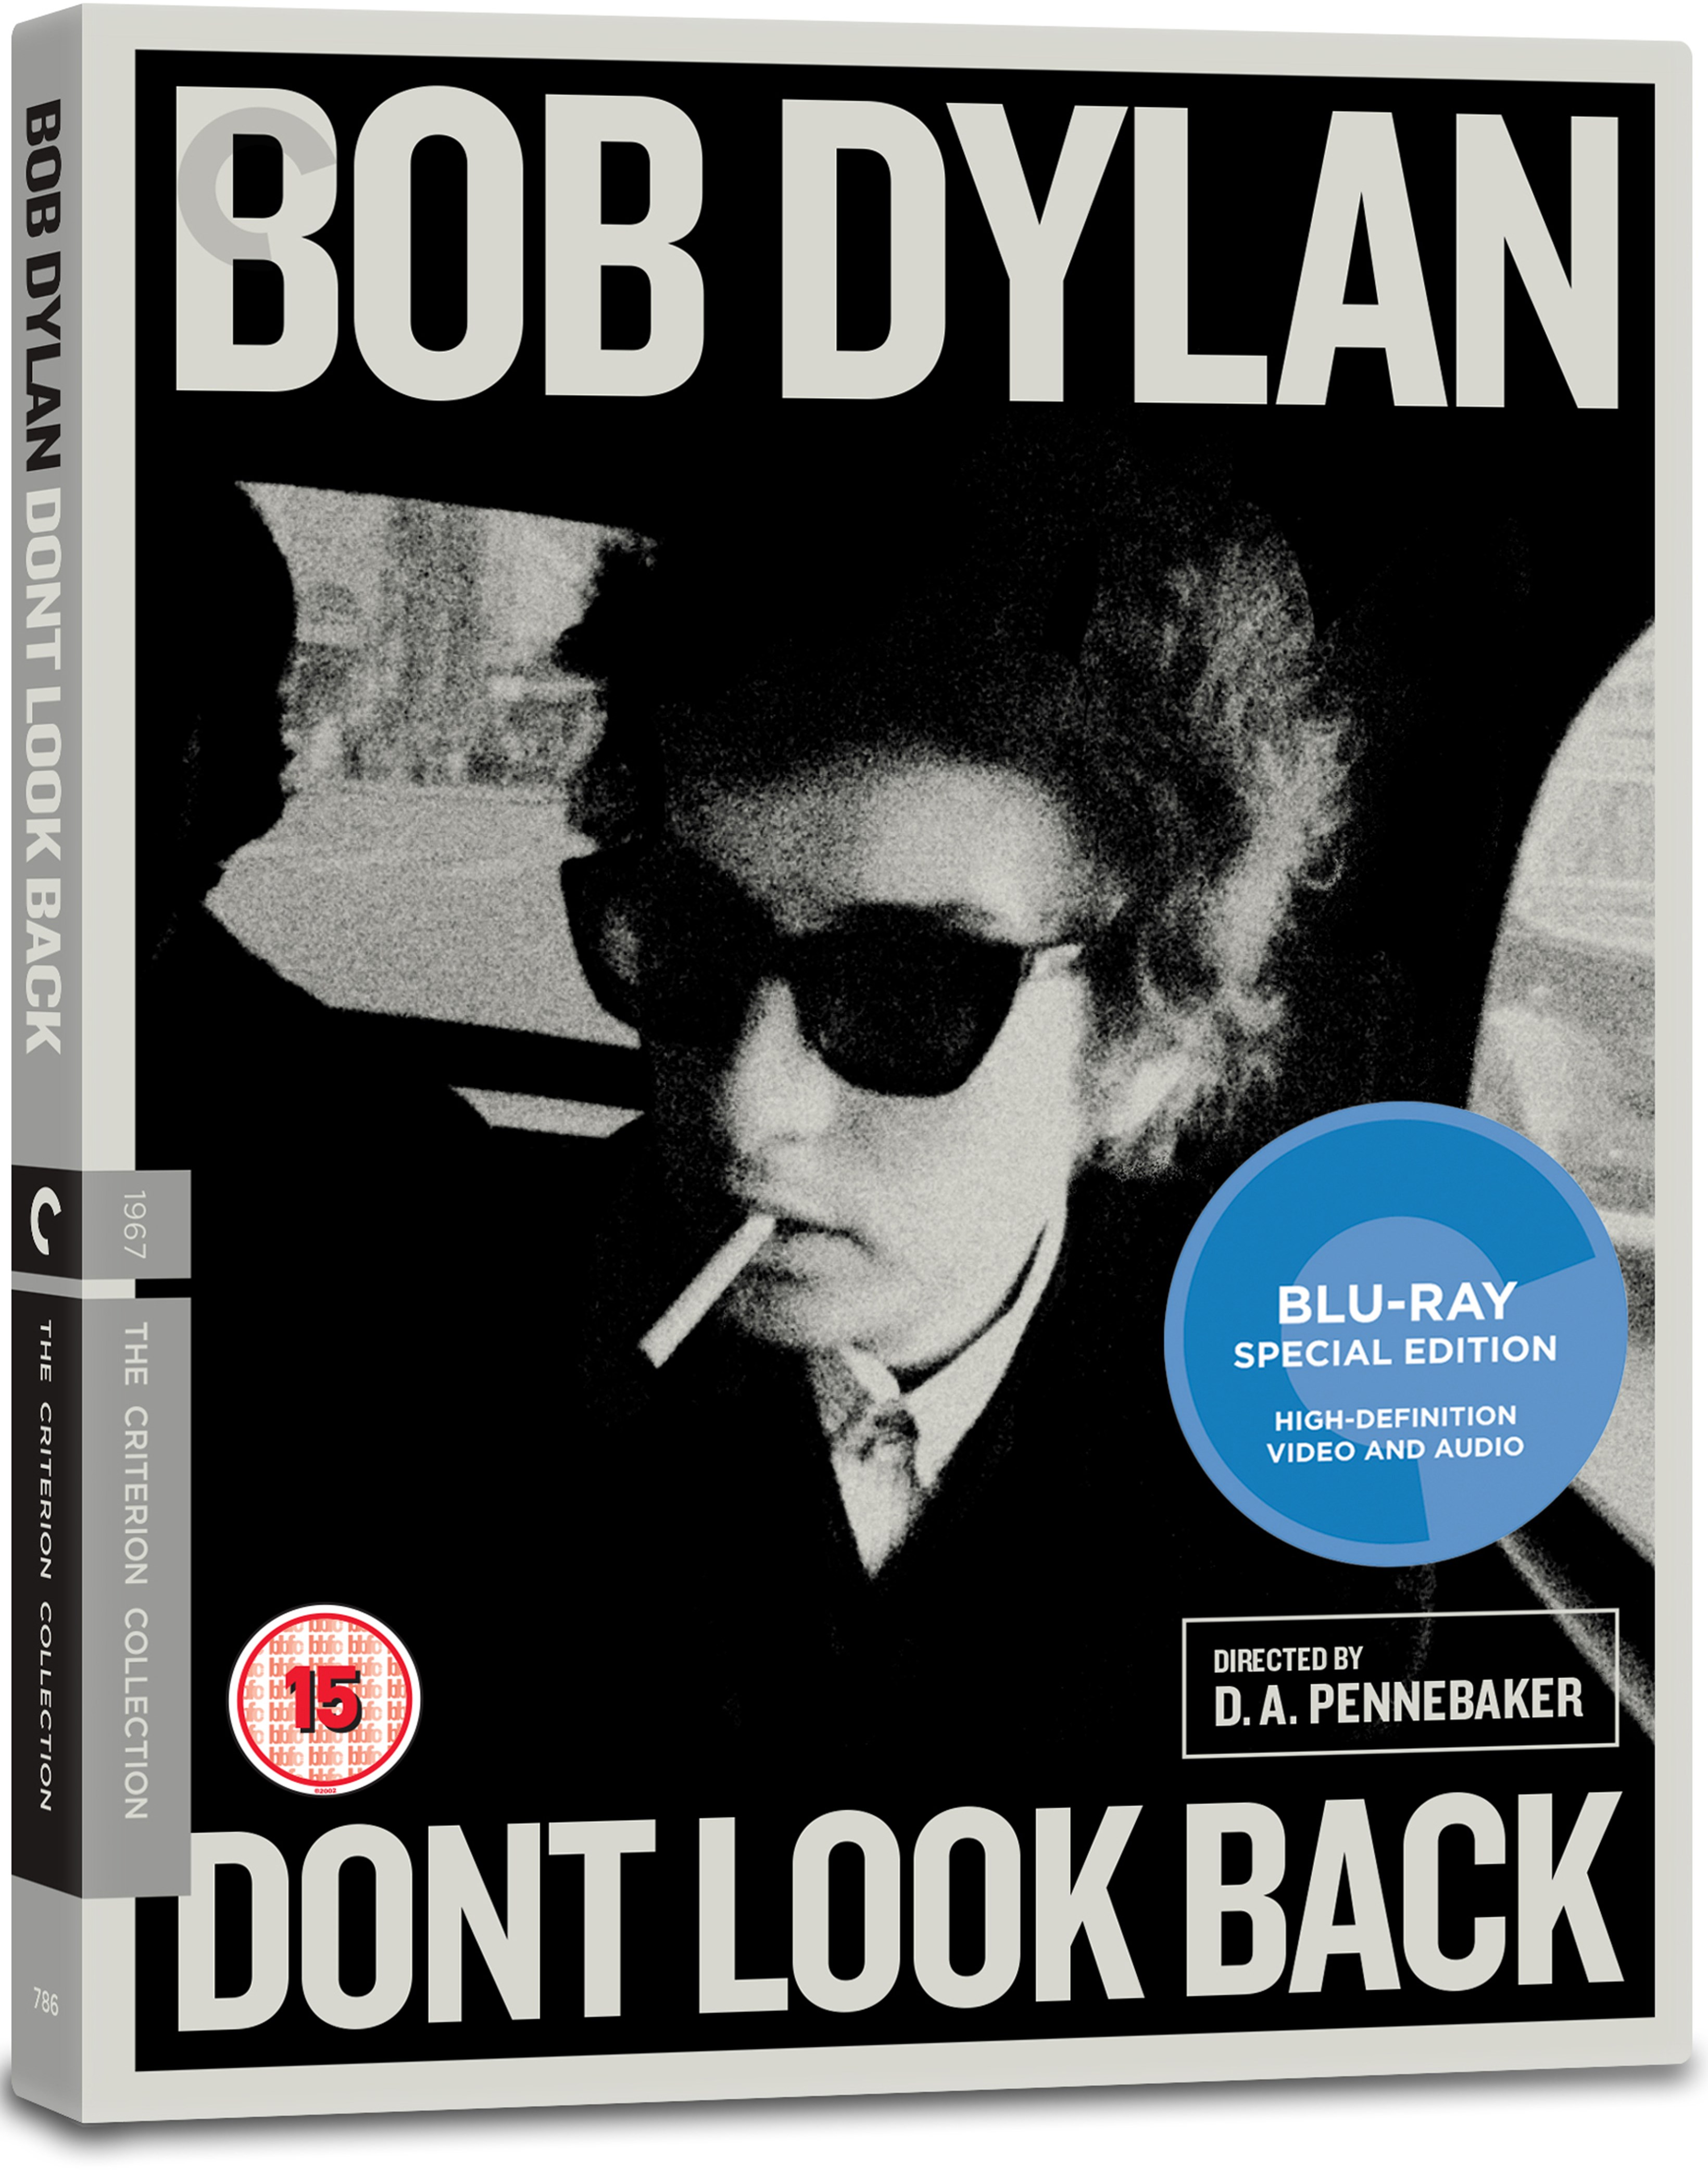 Bob Dylan: Don't Look Back - The Criterion Collection - 2